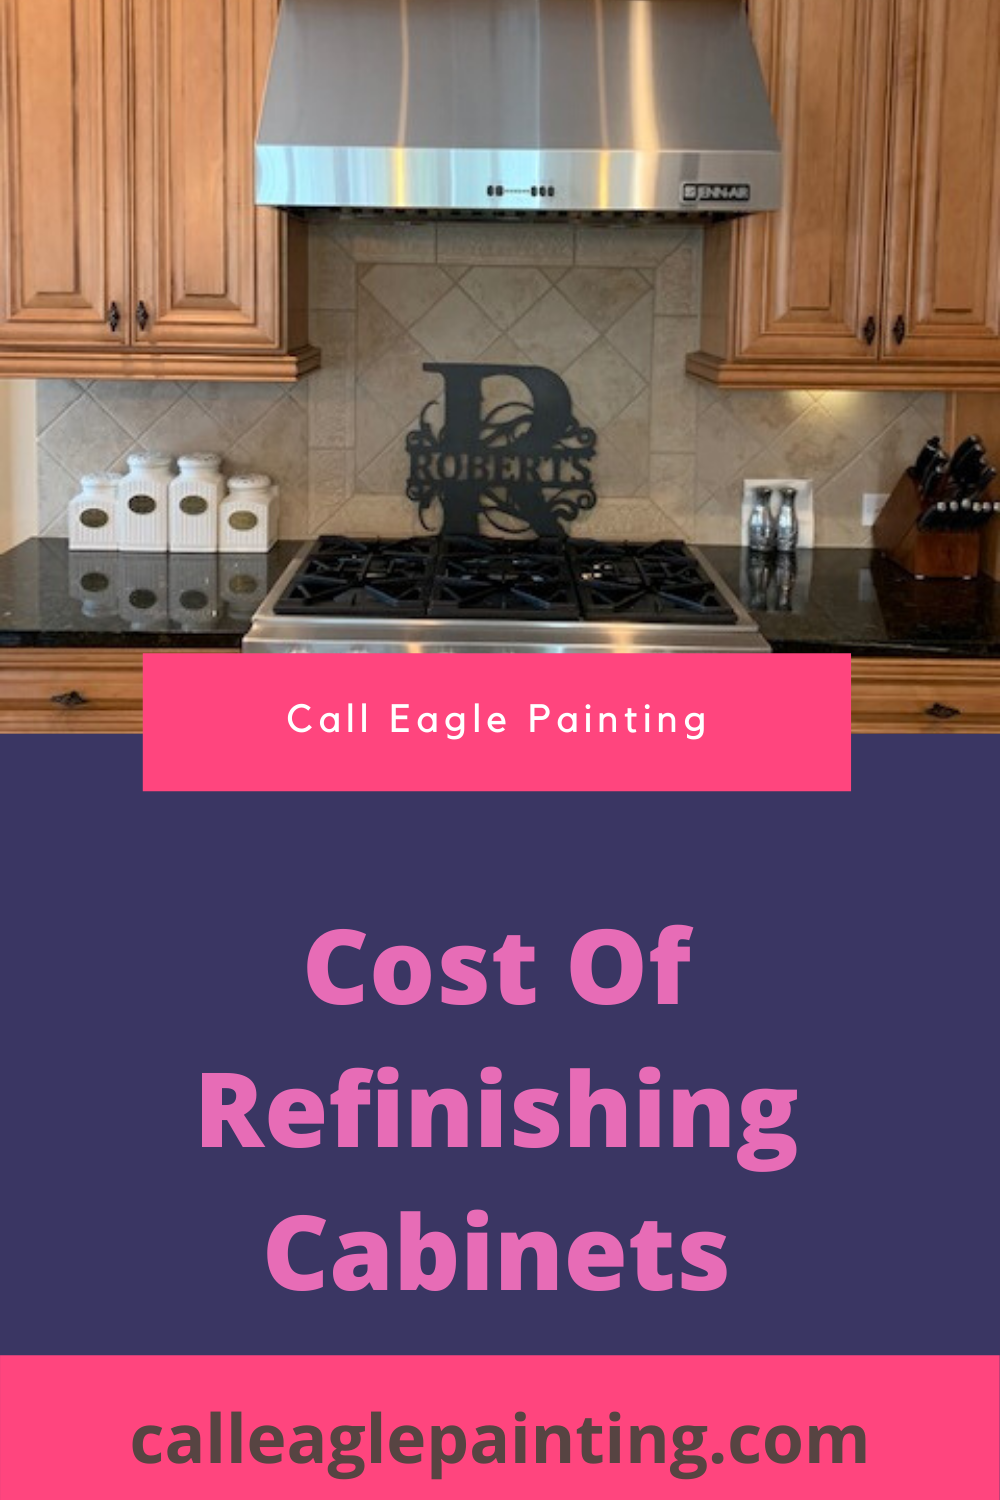 Cost Of Refinishing Cabinets Looking For Kitchen Cabinet Ideas Shop Our Line Of Pre Assembled Kit In 2020 Refinishing Cabinets Kitchen Cabinets Kitchen Cabinet Styles